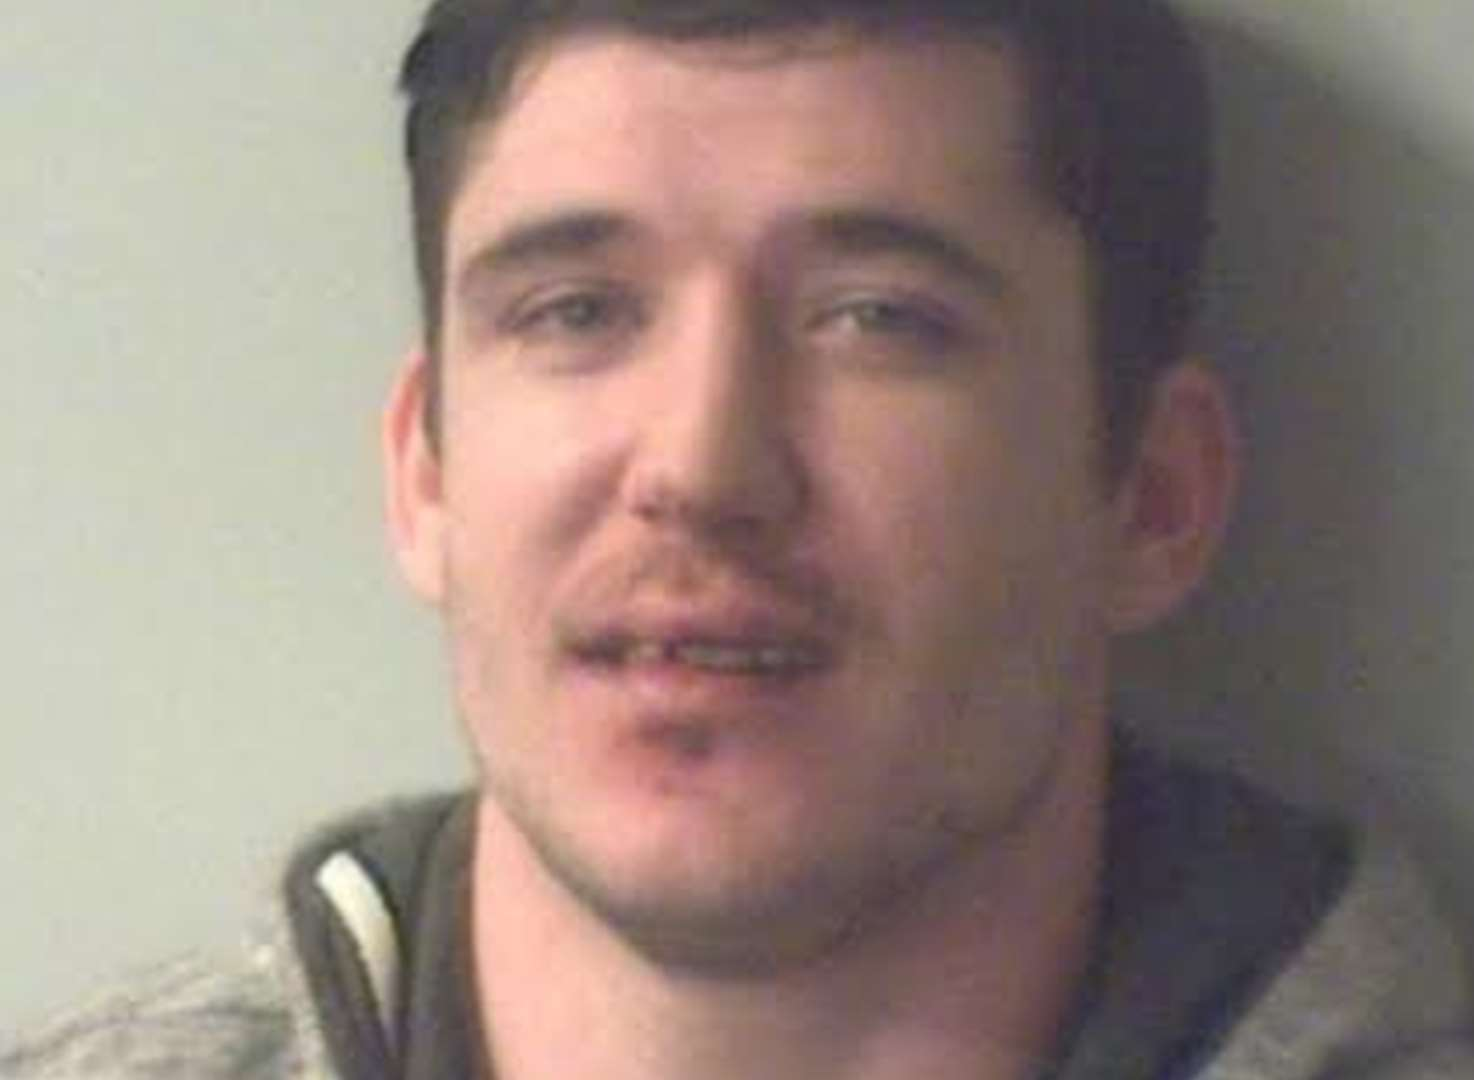 Man jailed after kicking woman in head